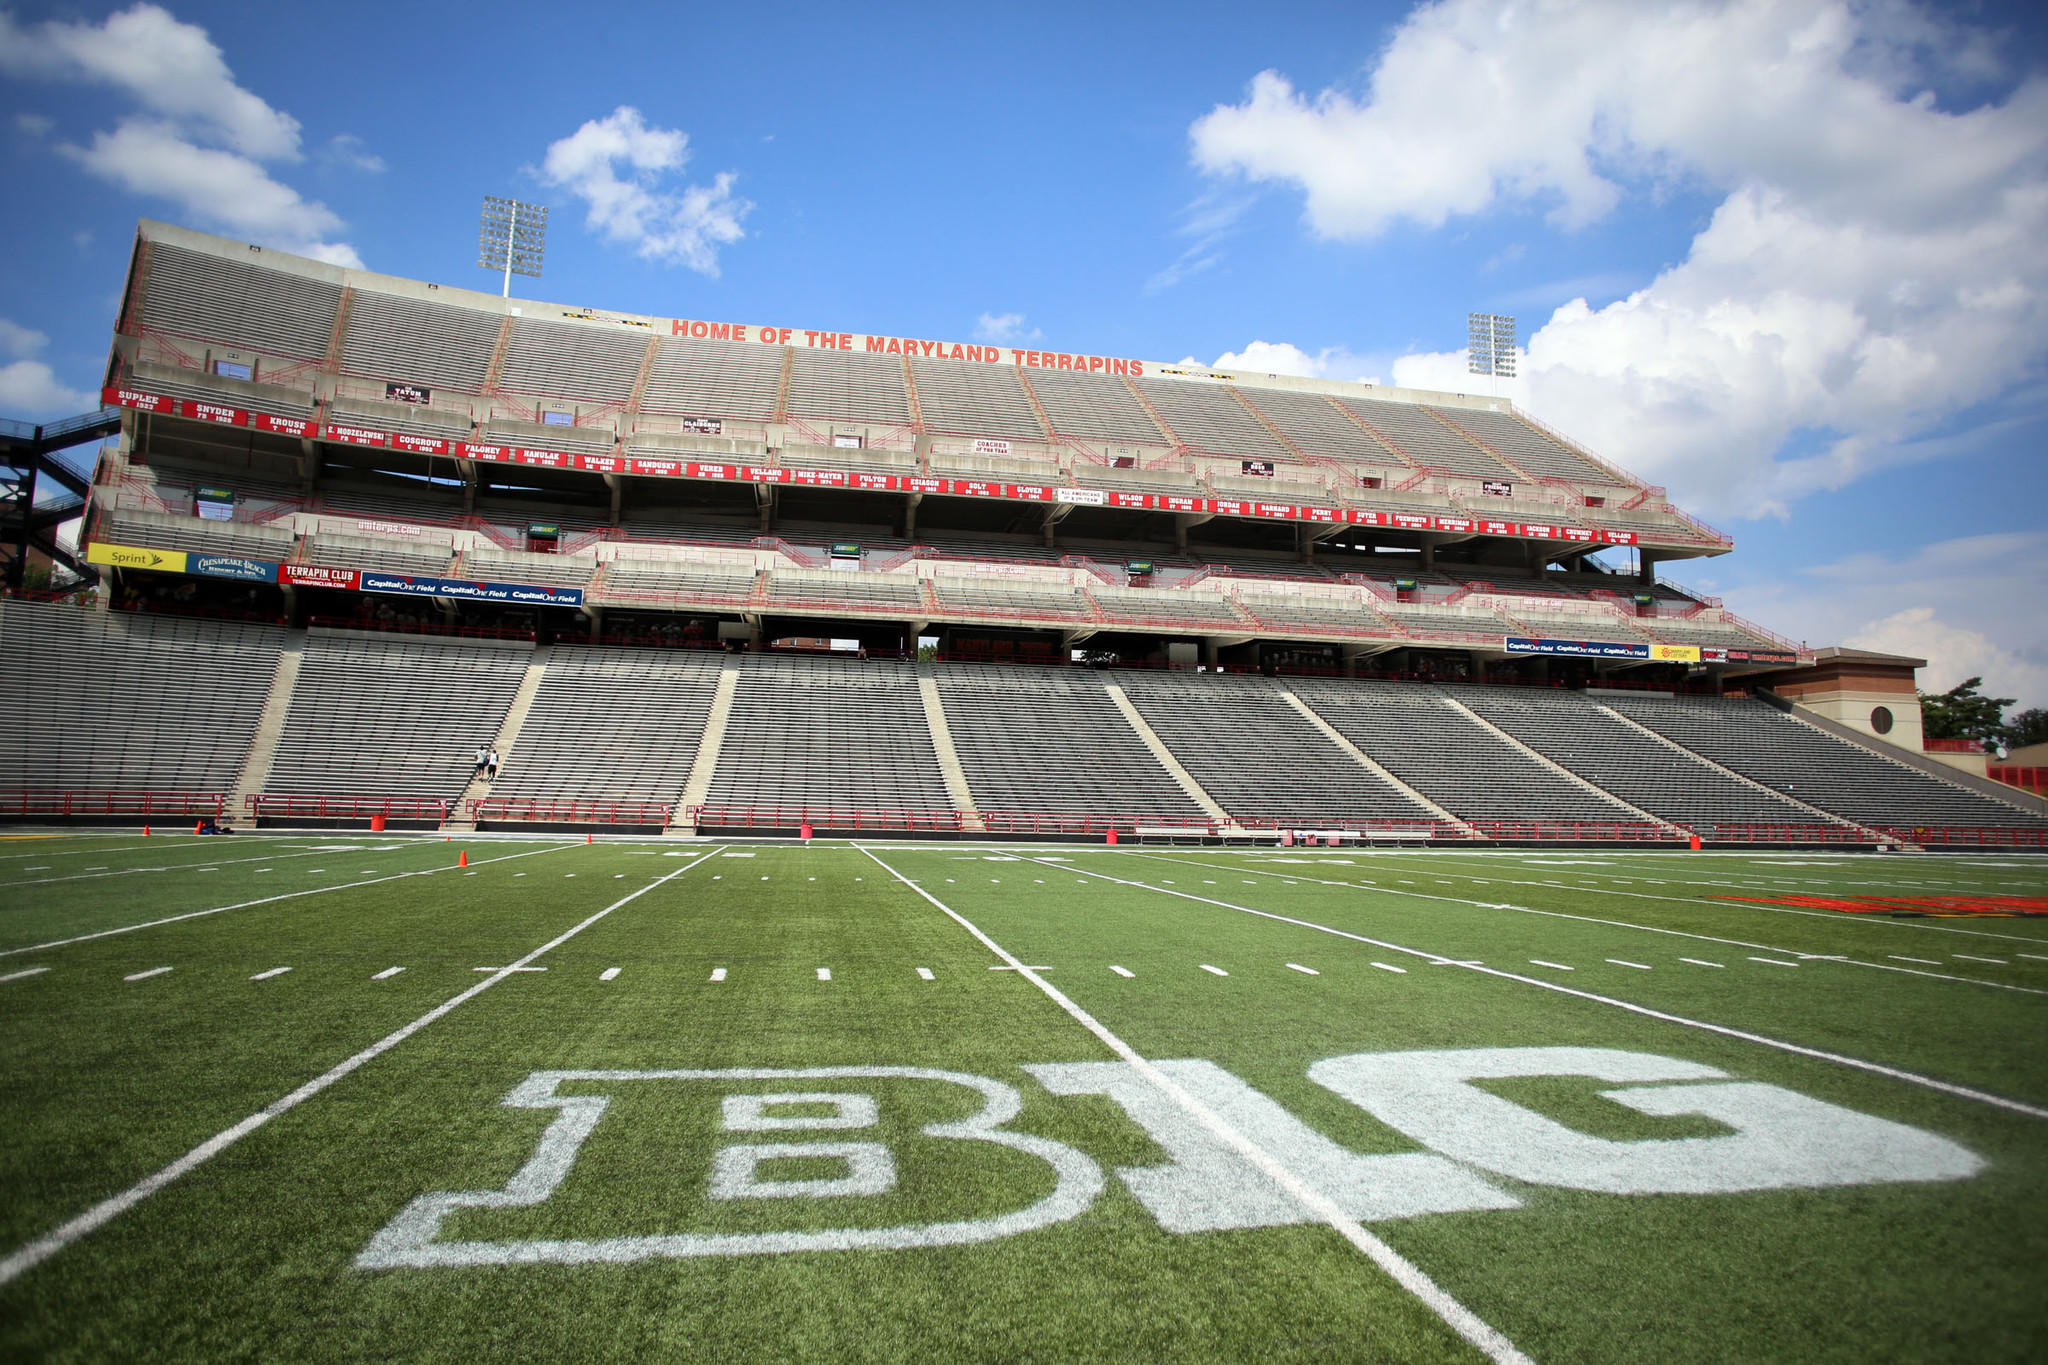 Capital One Field at Byrd Stadium now displays a logo of the Big Ten Conference as the University of Maryland moves from the Atlantic Coast Conference to the Big Ten this season.